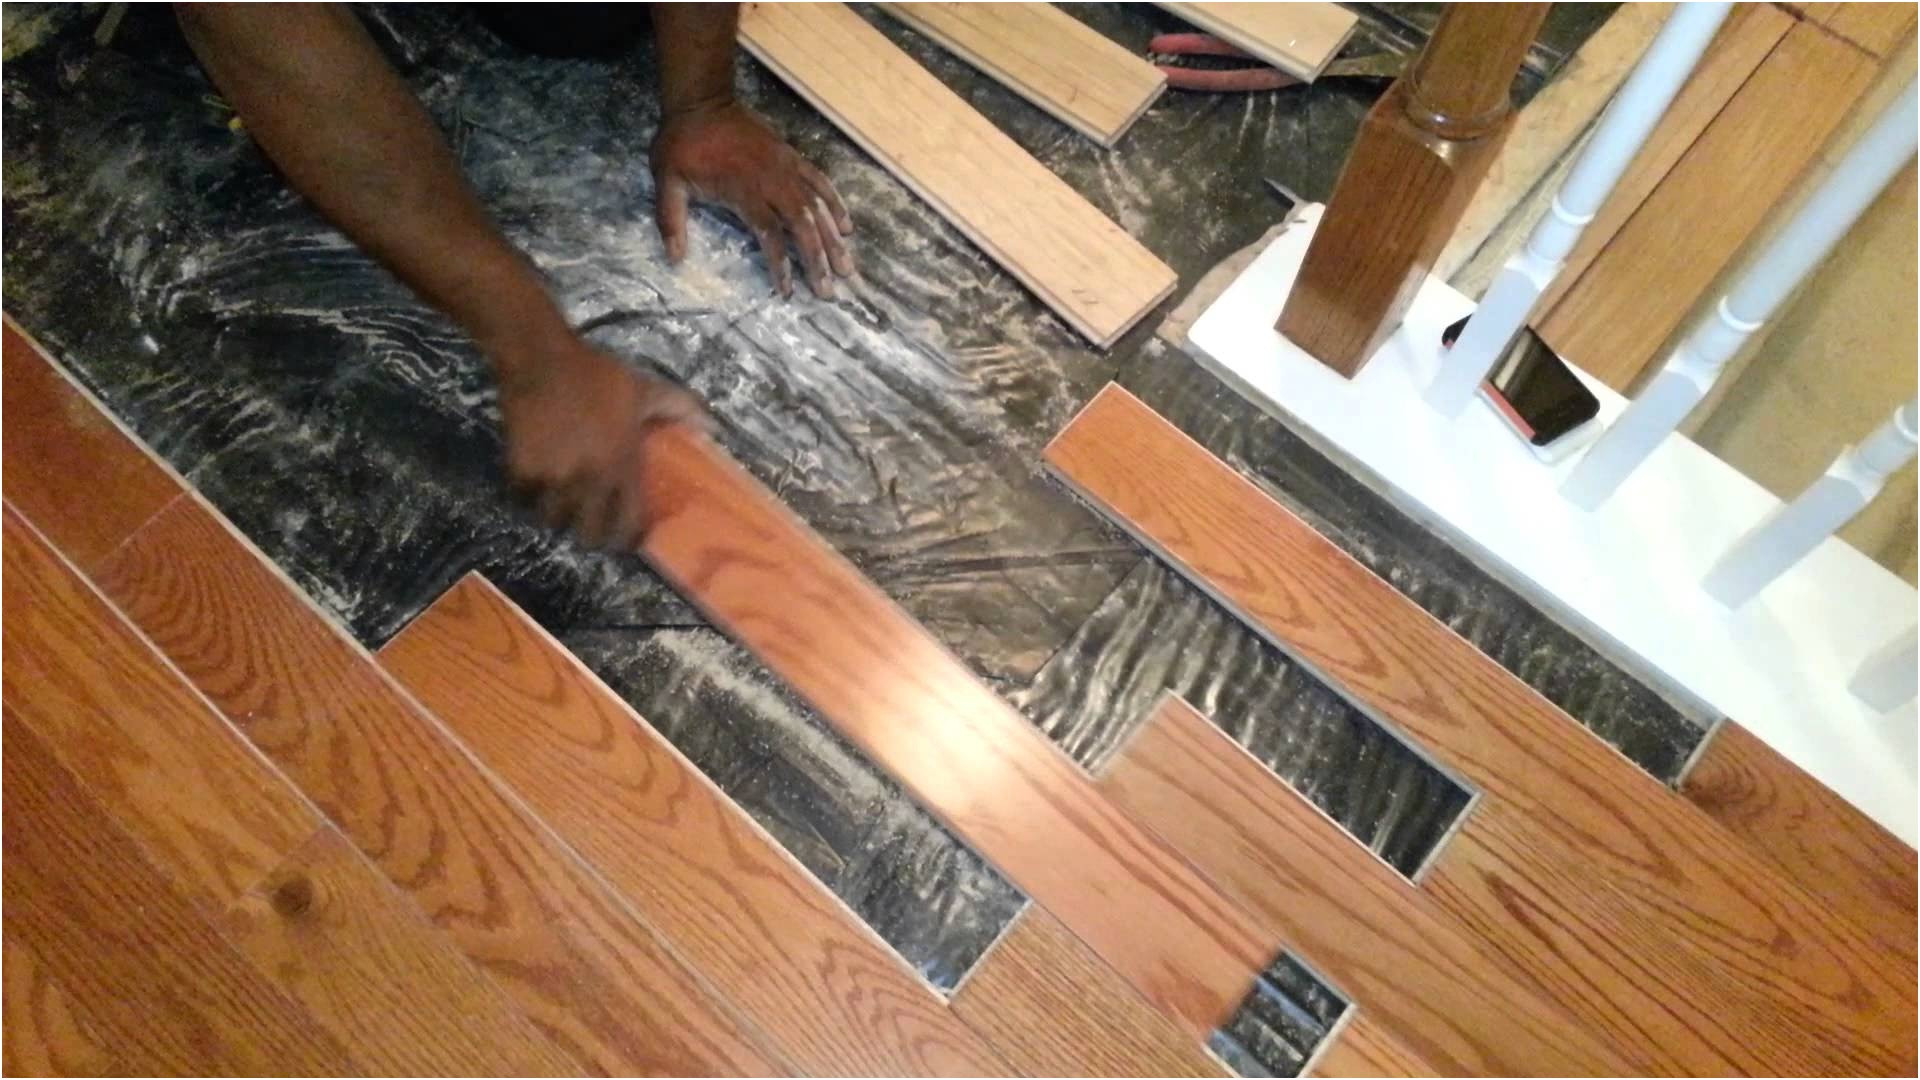 how to install hardwood floors without nailer of best way to install engineered wood flooring over concrete hardwood regarding best way to install engineered wood flooring over concrete hardwood floor installation hardwood floor nailer installing